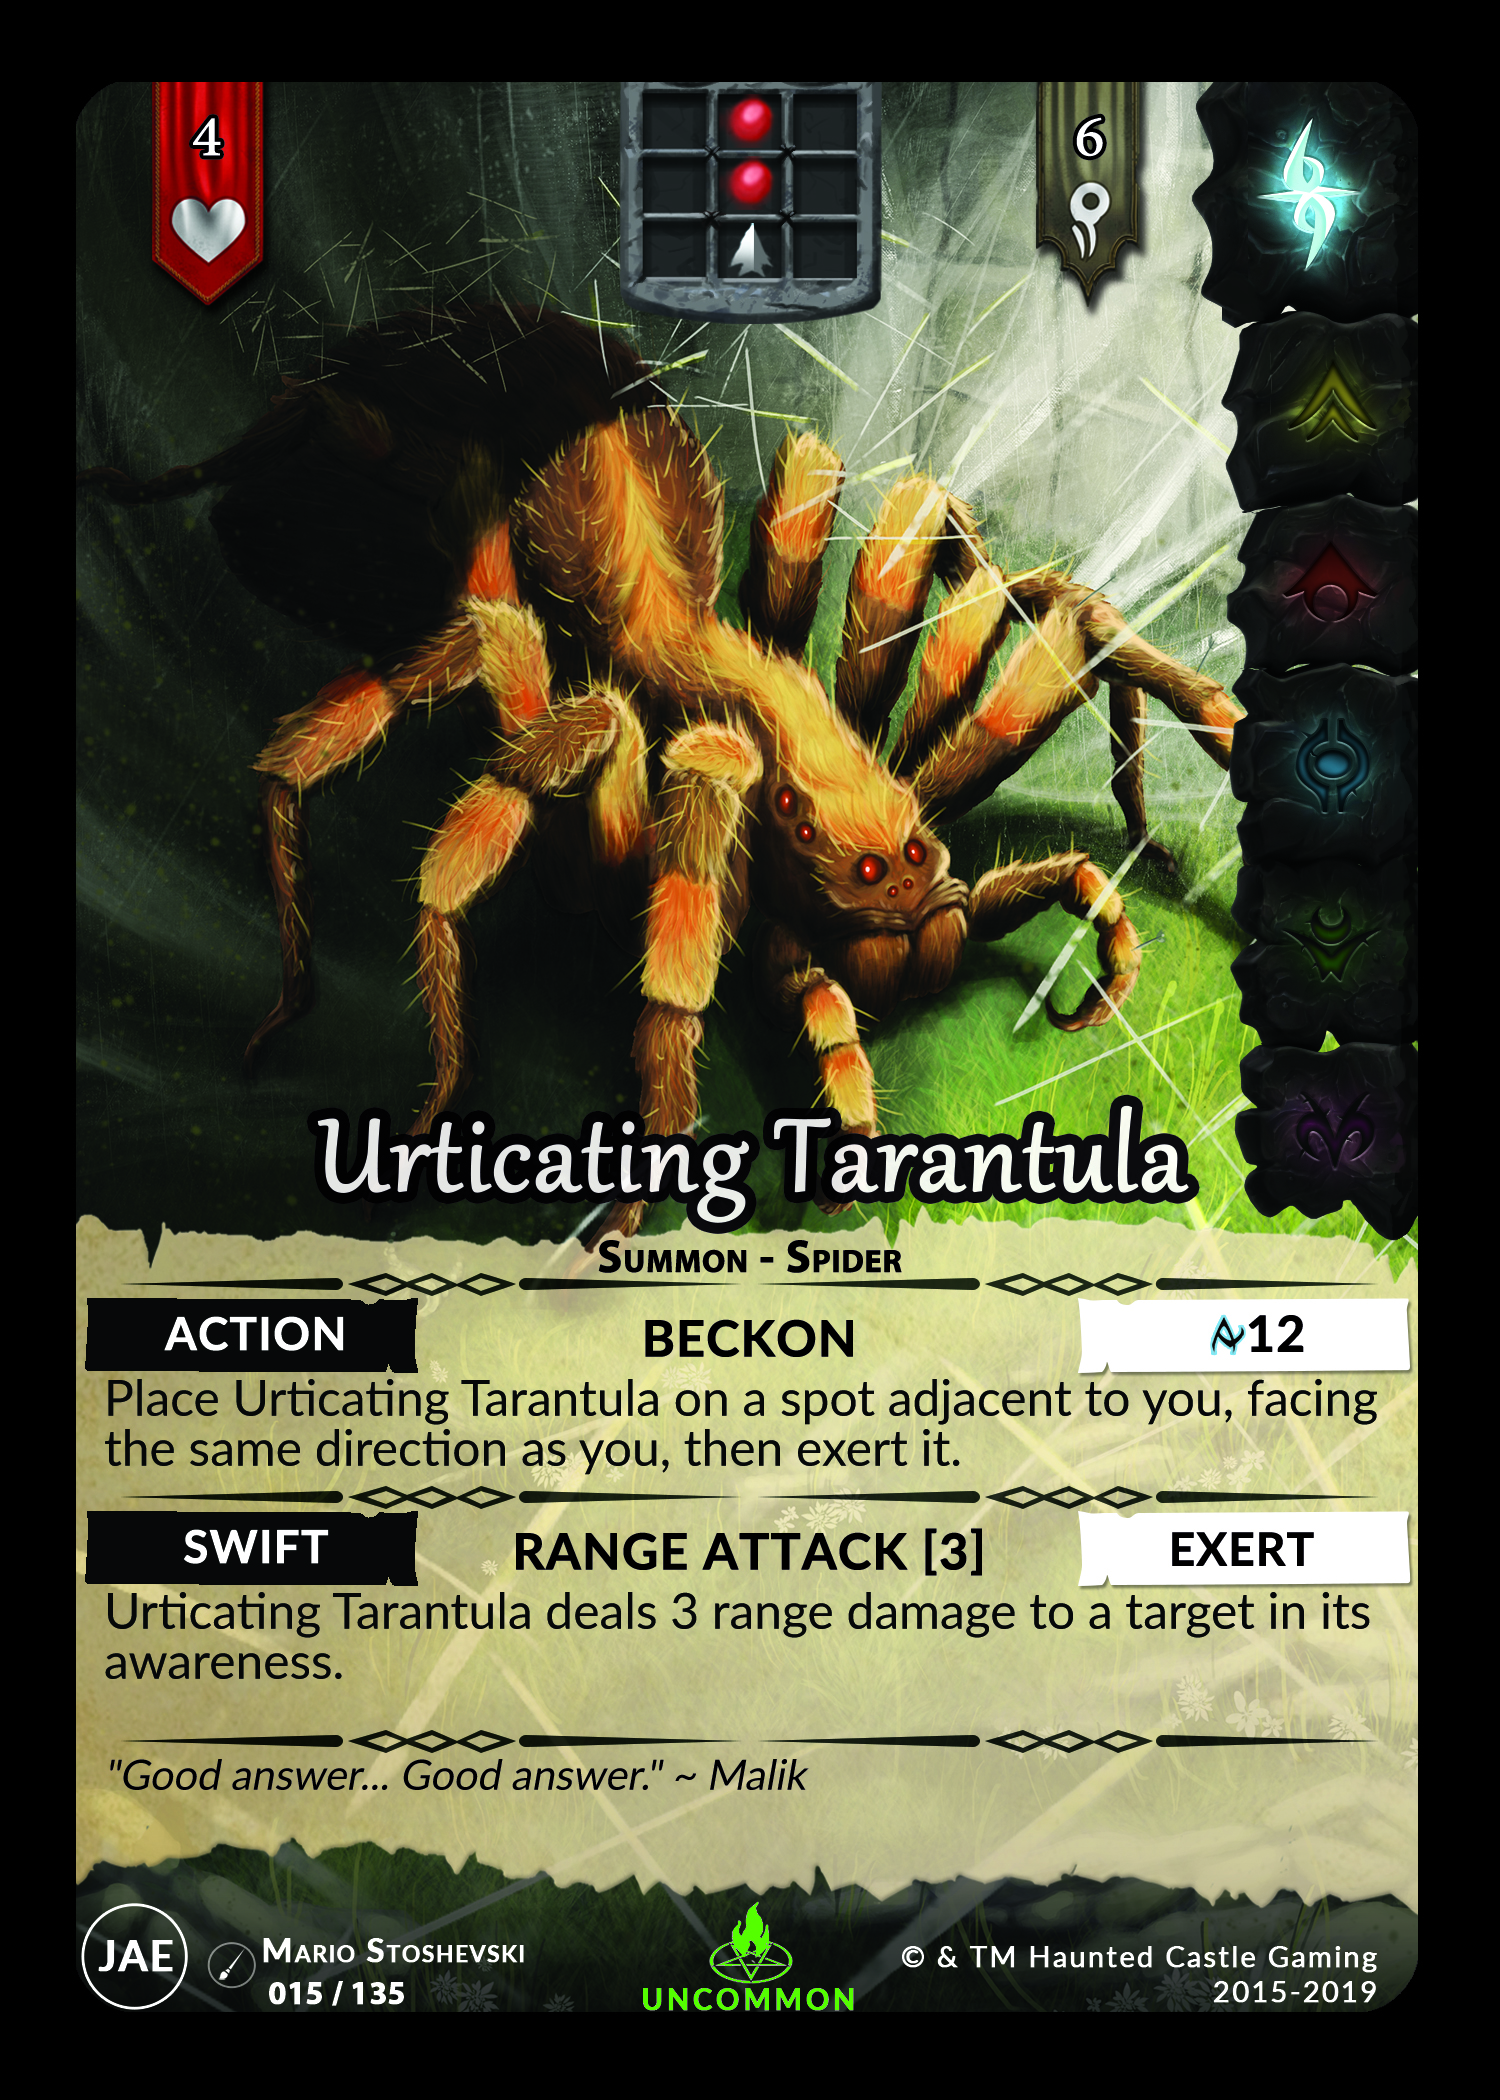 015-Urticating Tarantula.jpg